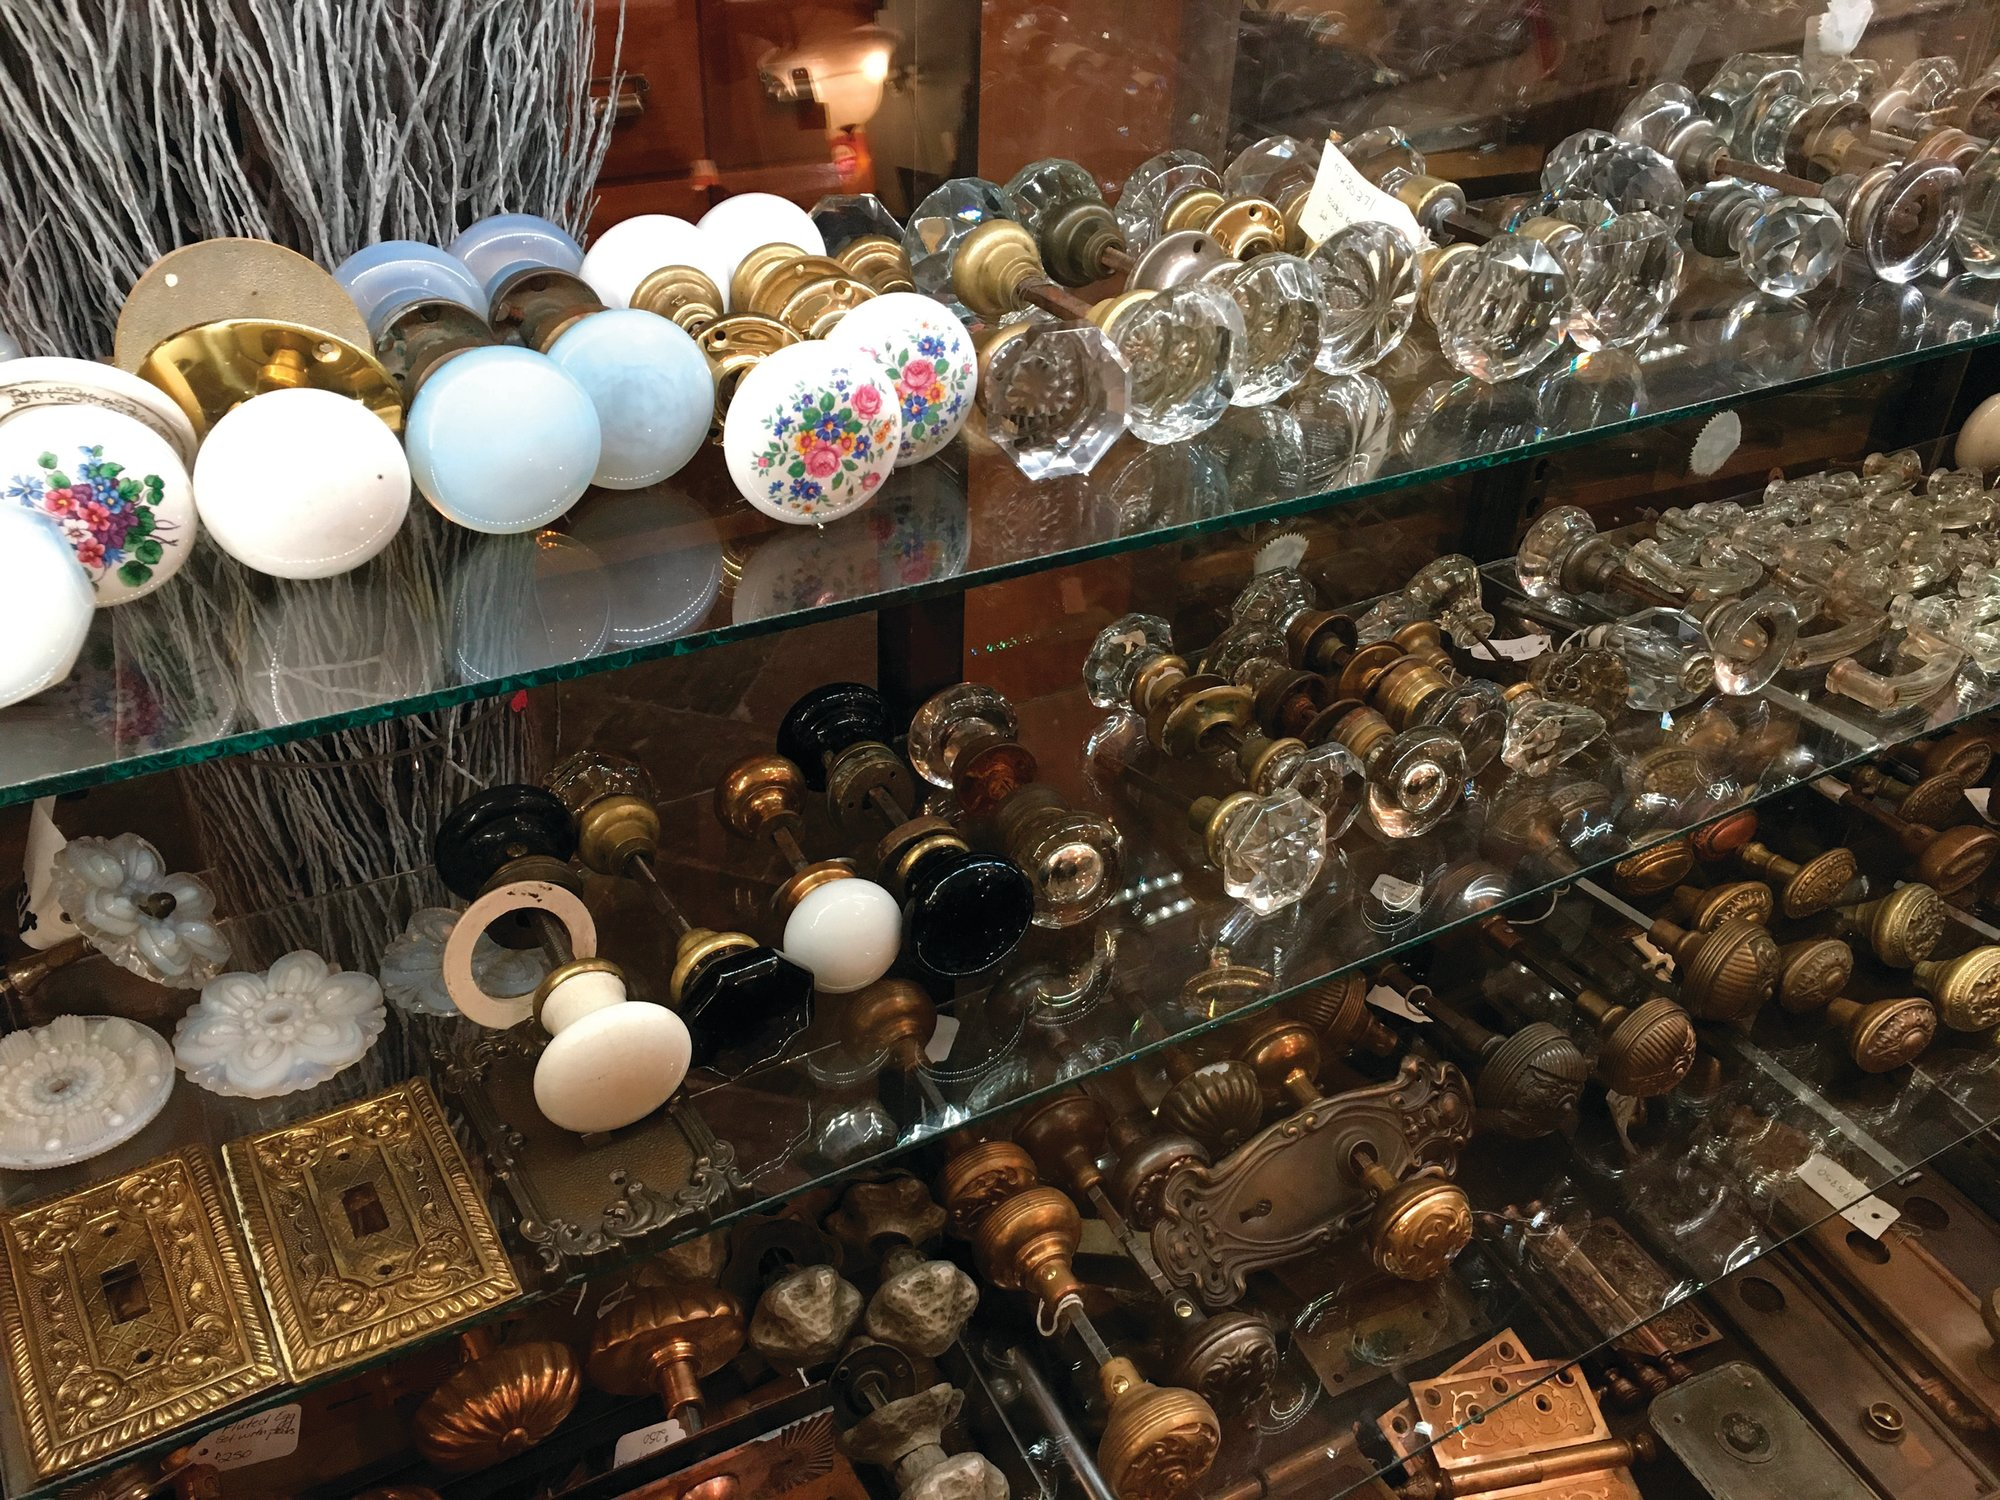 PHOTOS BY KATHERINE ROTH VIA AP Seen is a selection of vintage doorknobs and other items available for sale at Olde Good Things salvage store in New York.